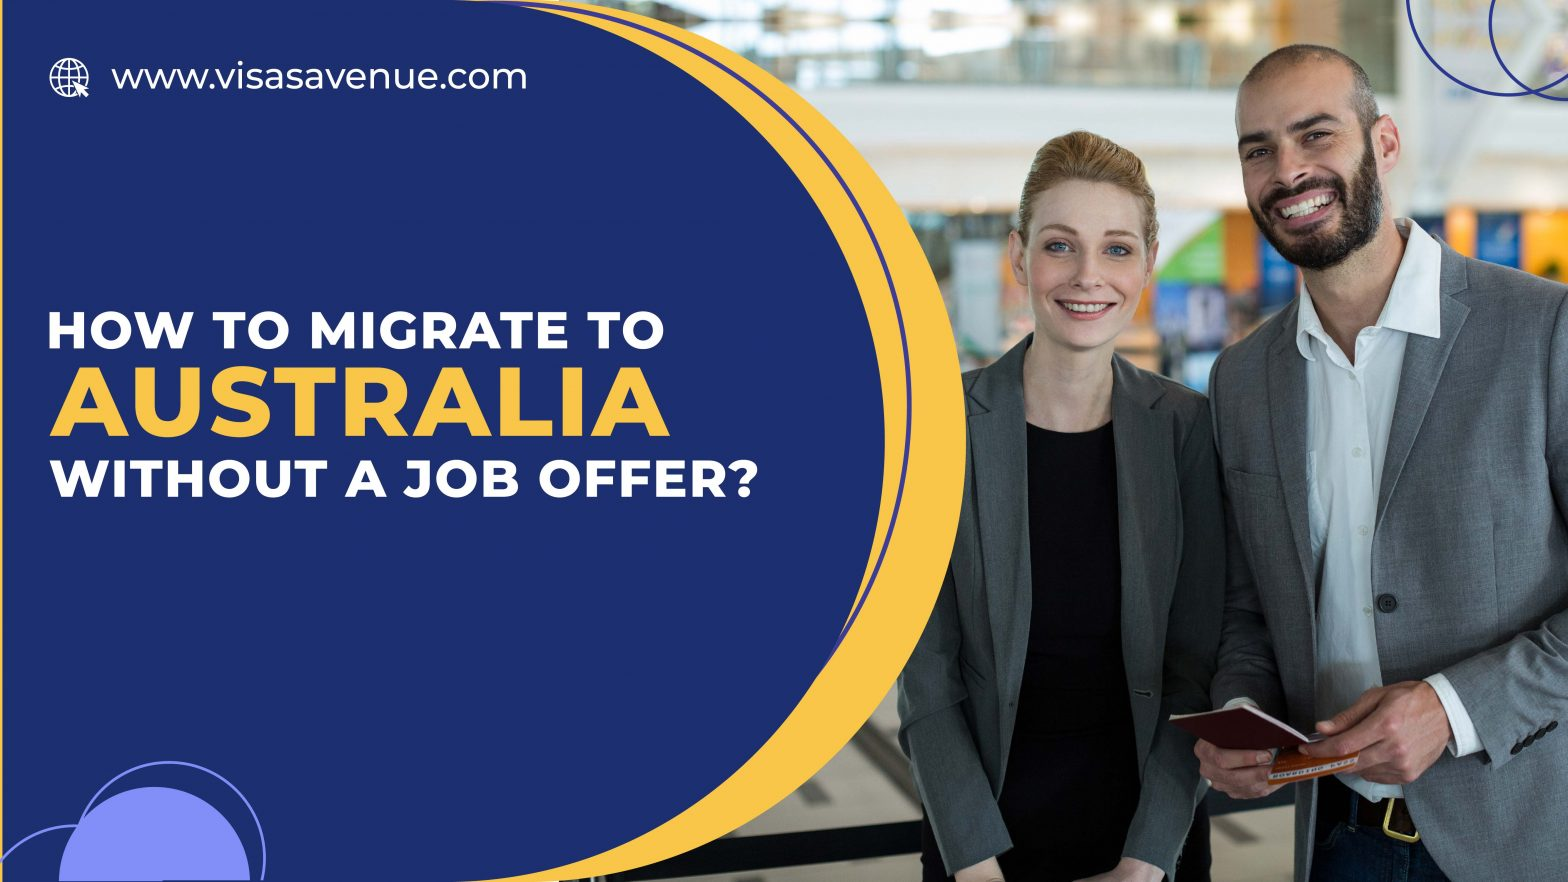 How to migrate to Australia without a job offer?